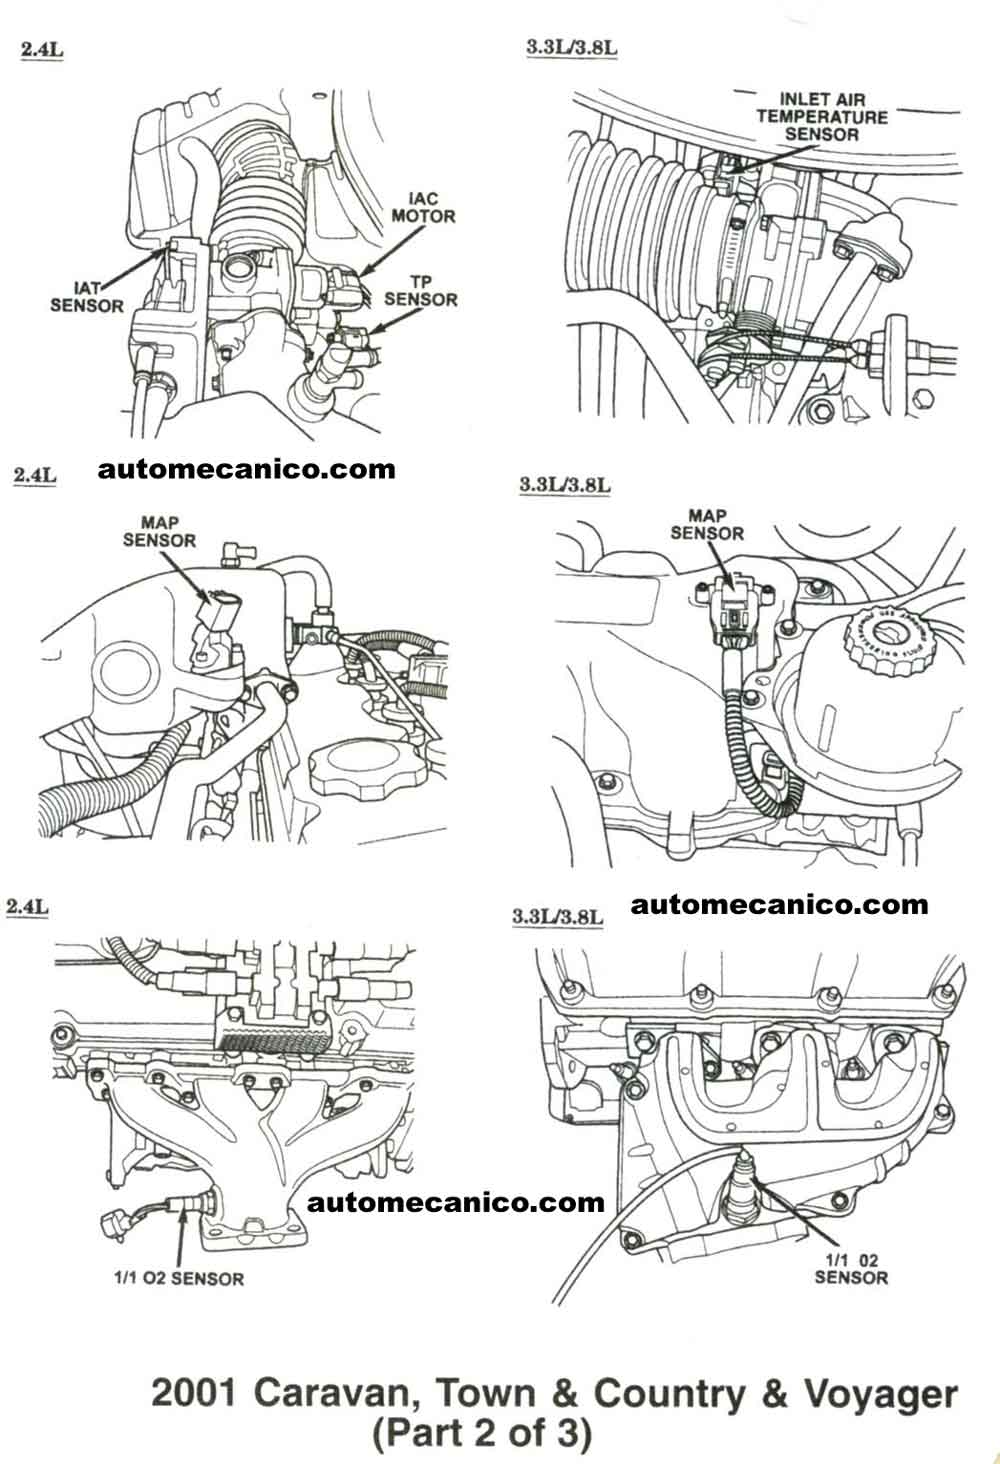 248930 2010 Gc Headrest Removal also MW1k 16813 besides 99 Civic Heater Issue Blend Door Cabin Help 3106330 also MI7t 14030 furthermore Wiring Diagram For 1998 Freightliner. on 1999 dodge caravan